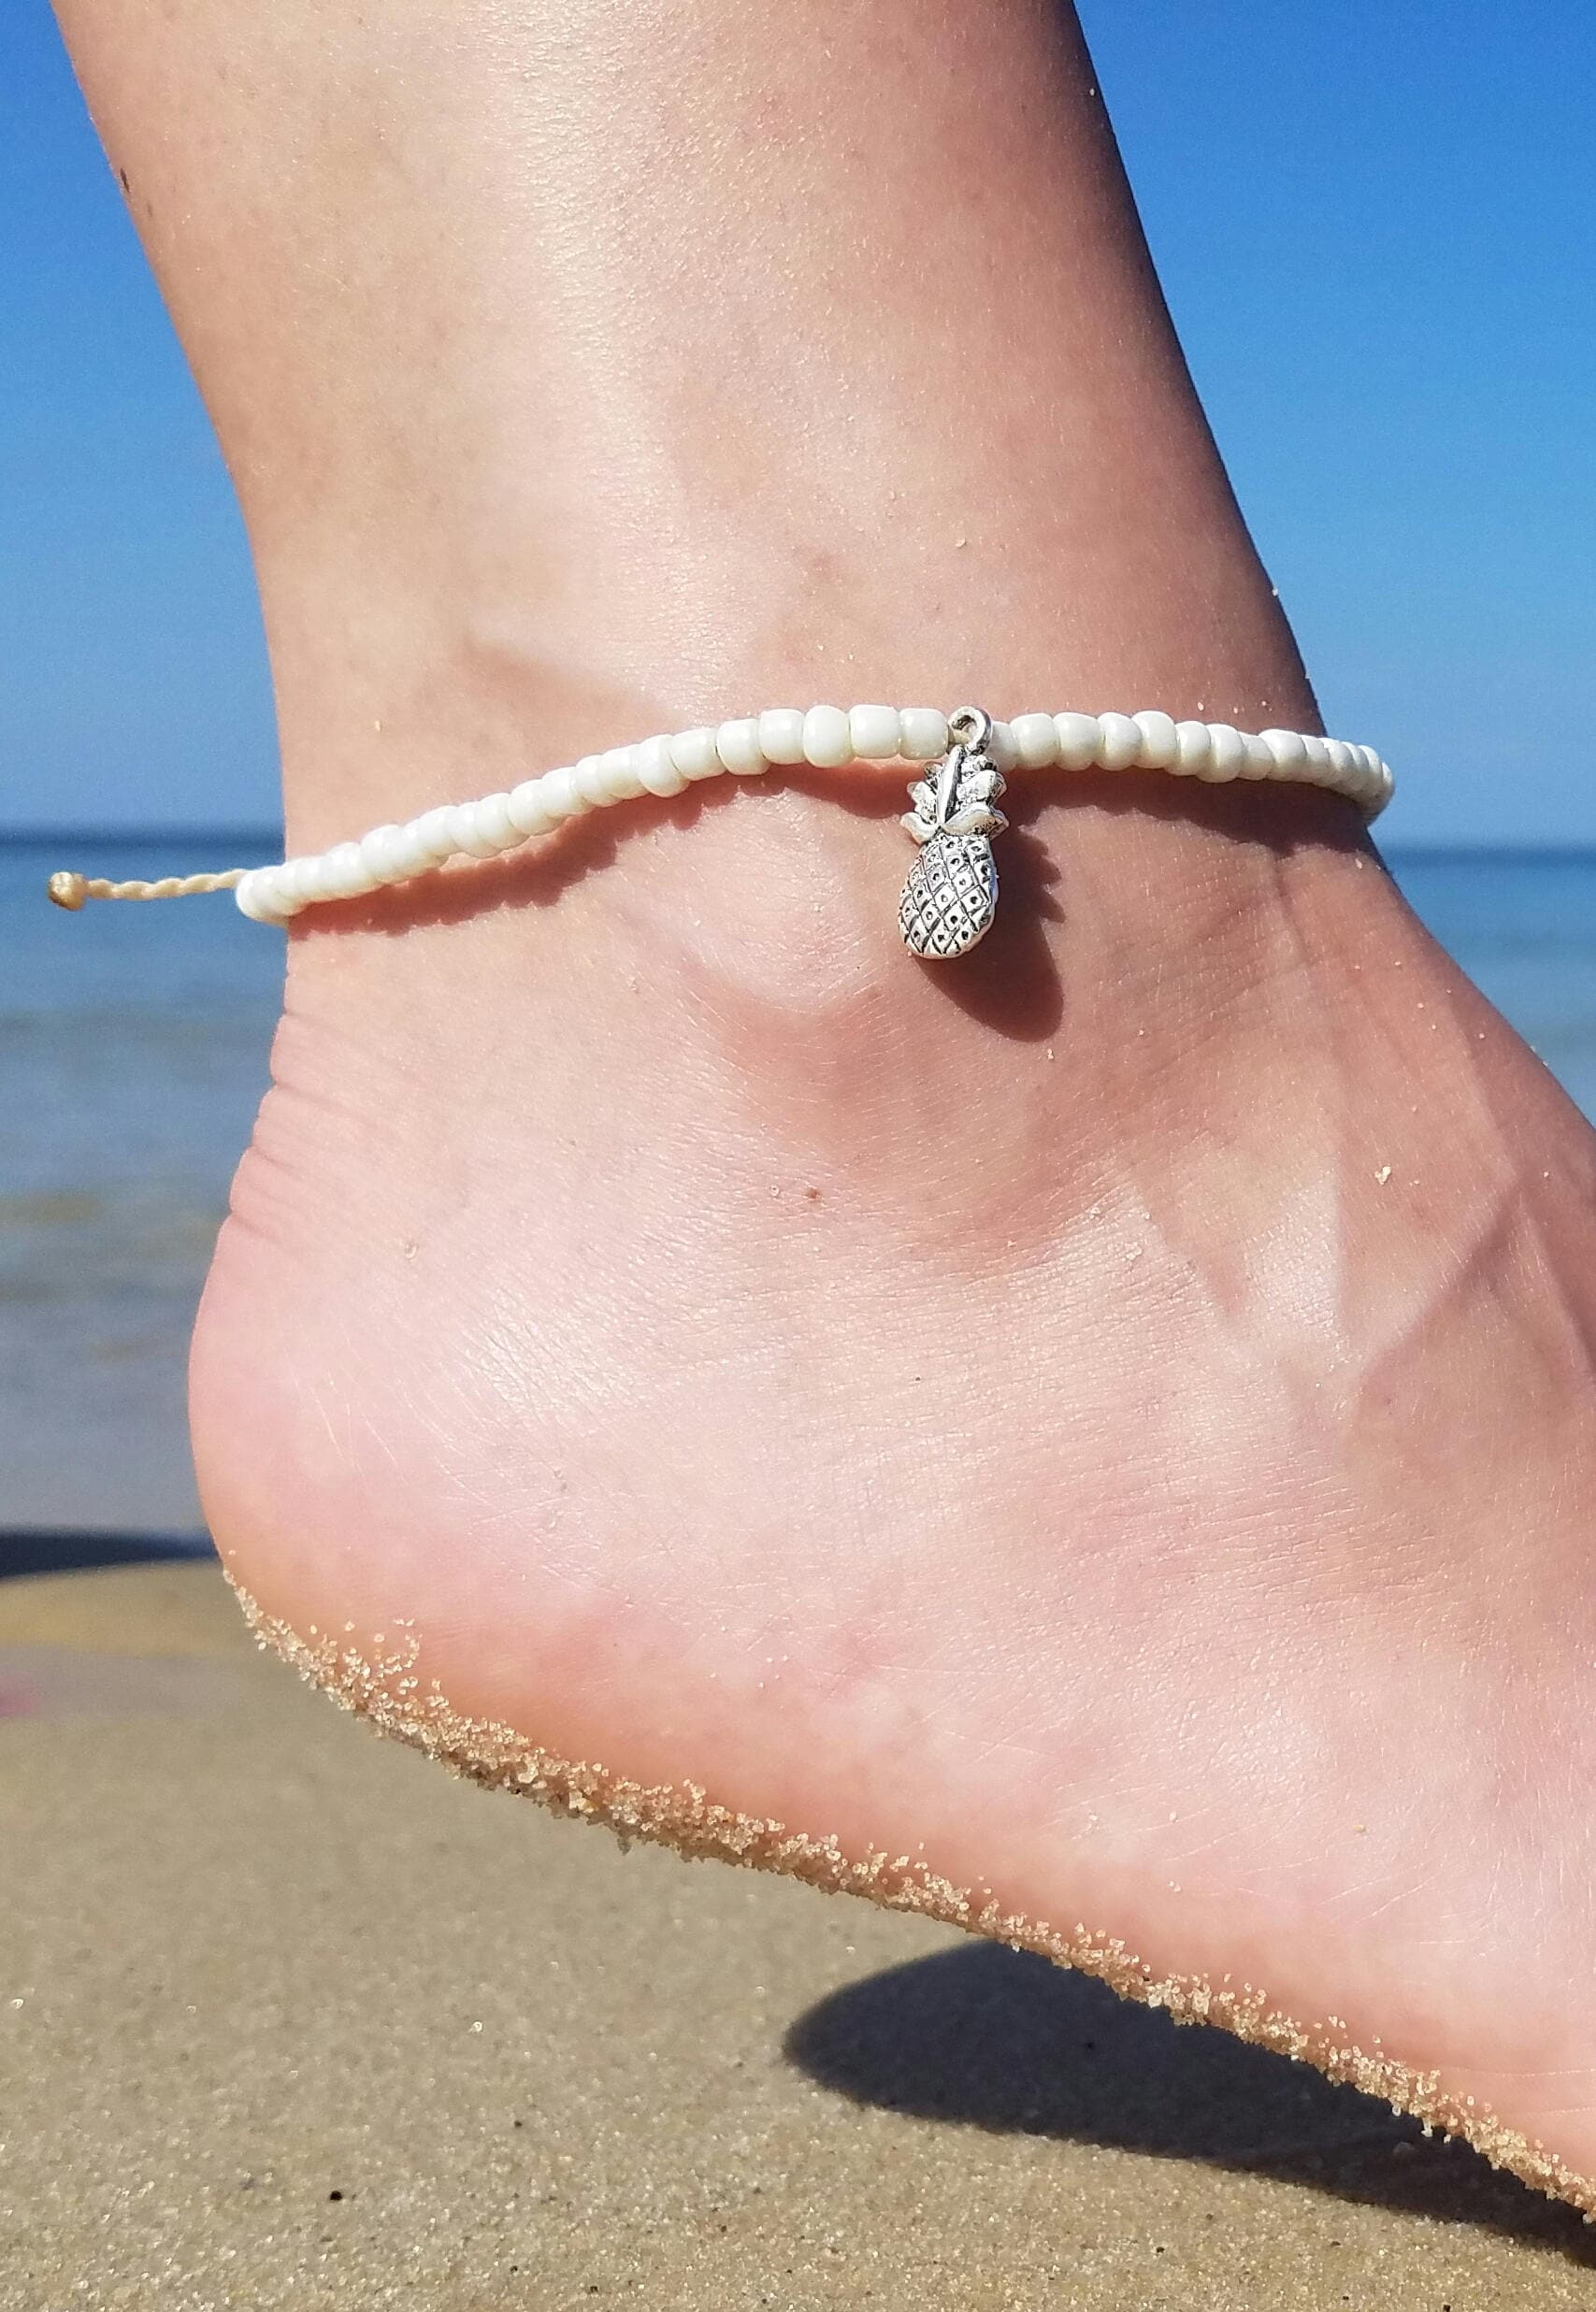 product com anklets beads fashion ankle offer from smooth anklet factory bracelet wholesale jewelry dhgate charm steel stainless bingoo waterproof